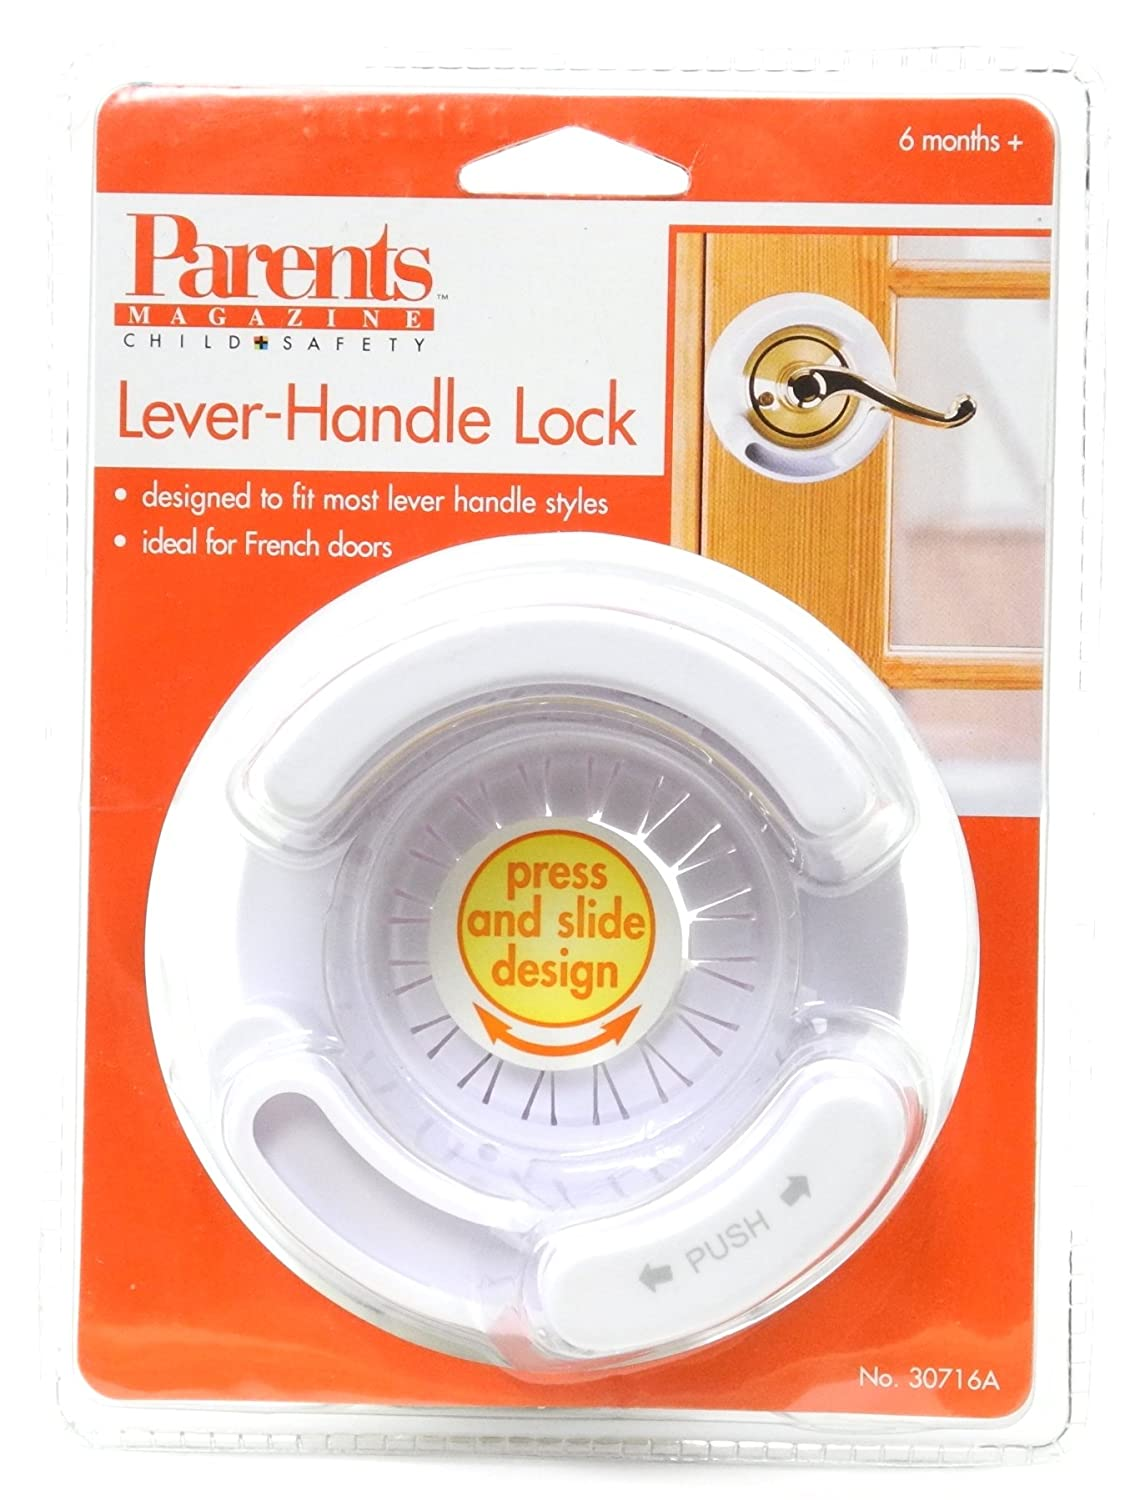 Lever Handle Lock Parents Child Safety Dorel Juvenile Group